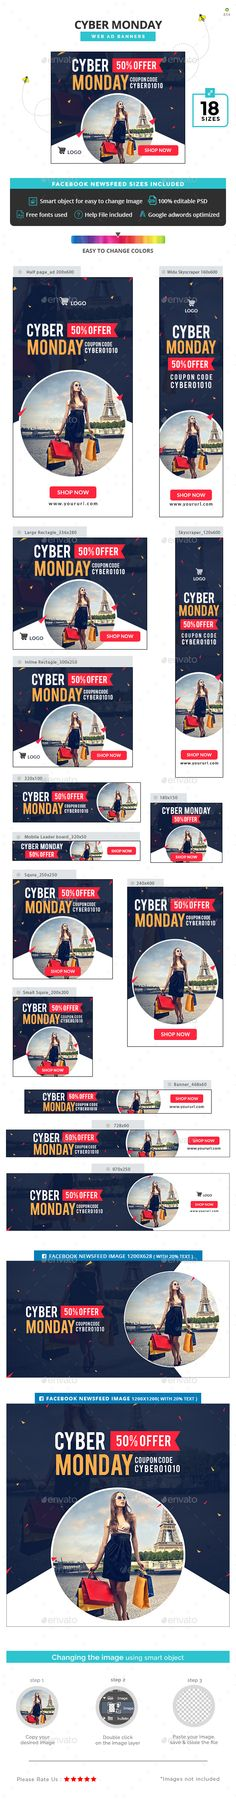 Cyber Monday Banners Template PSD #design #ad